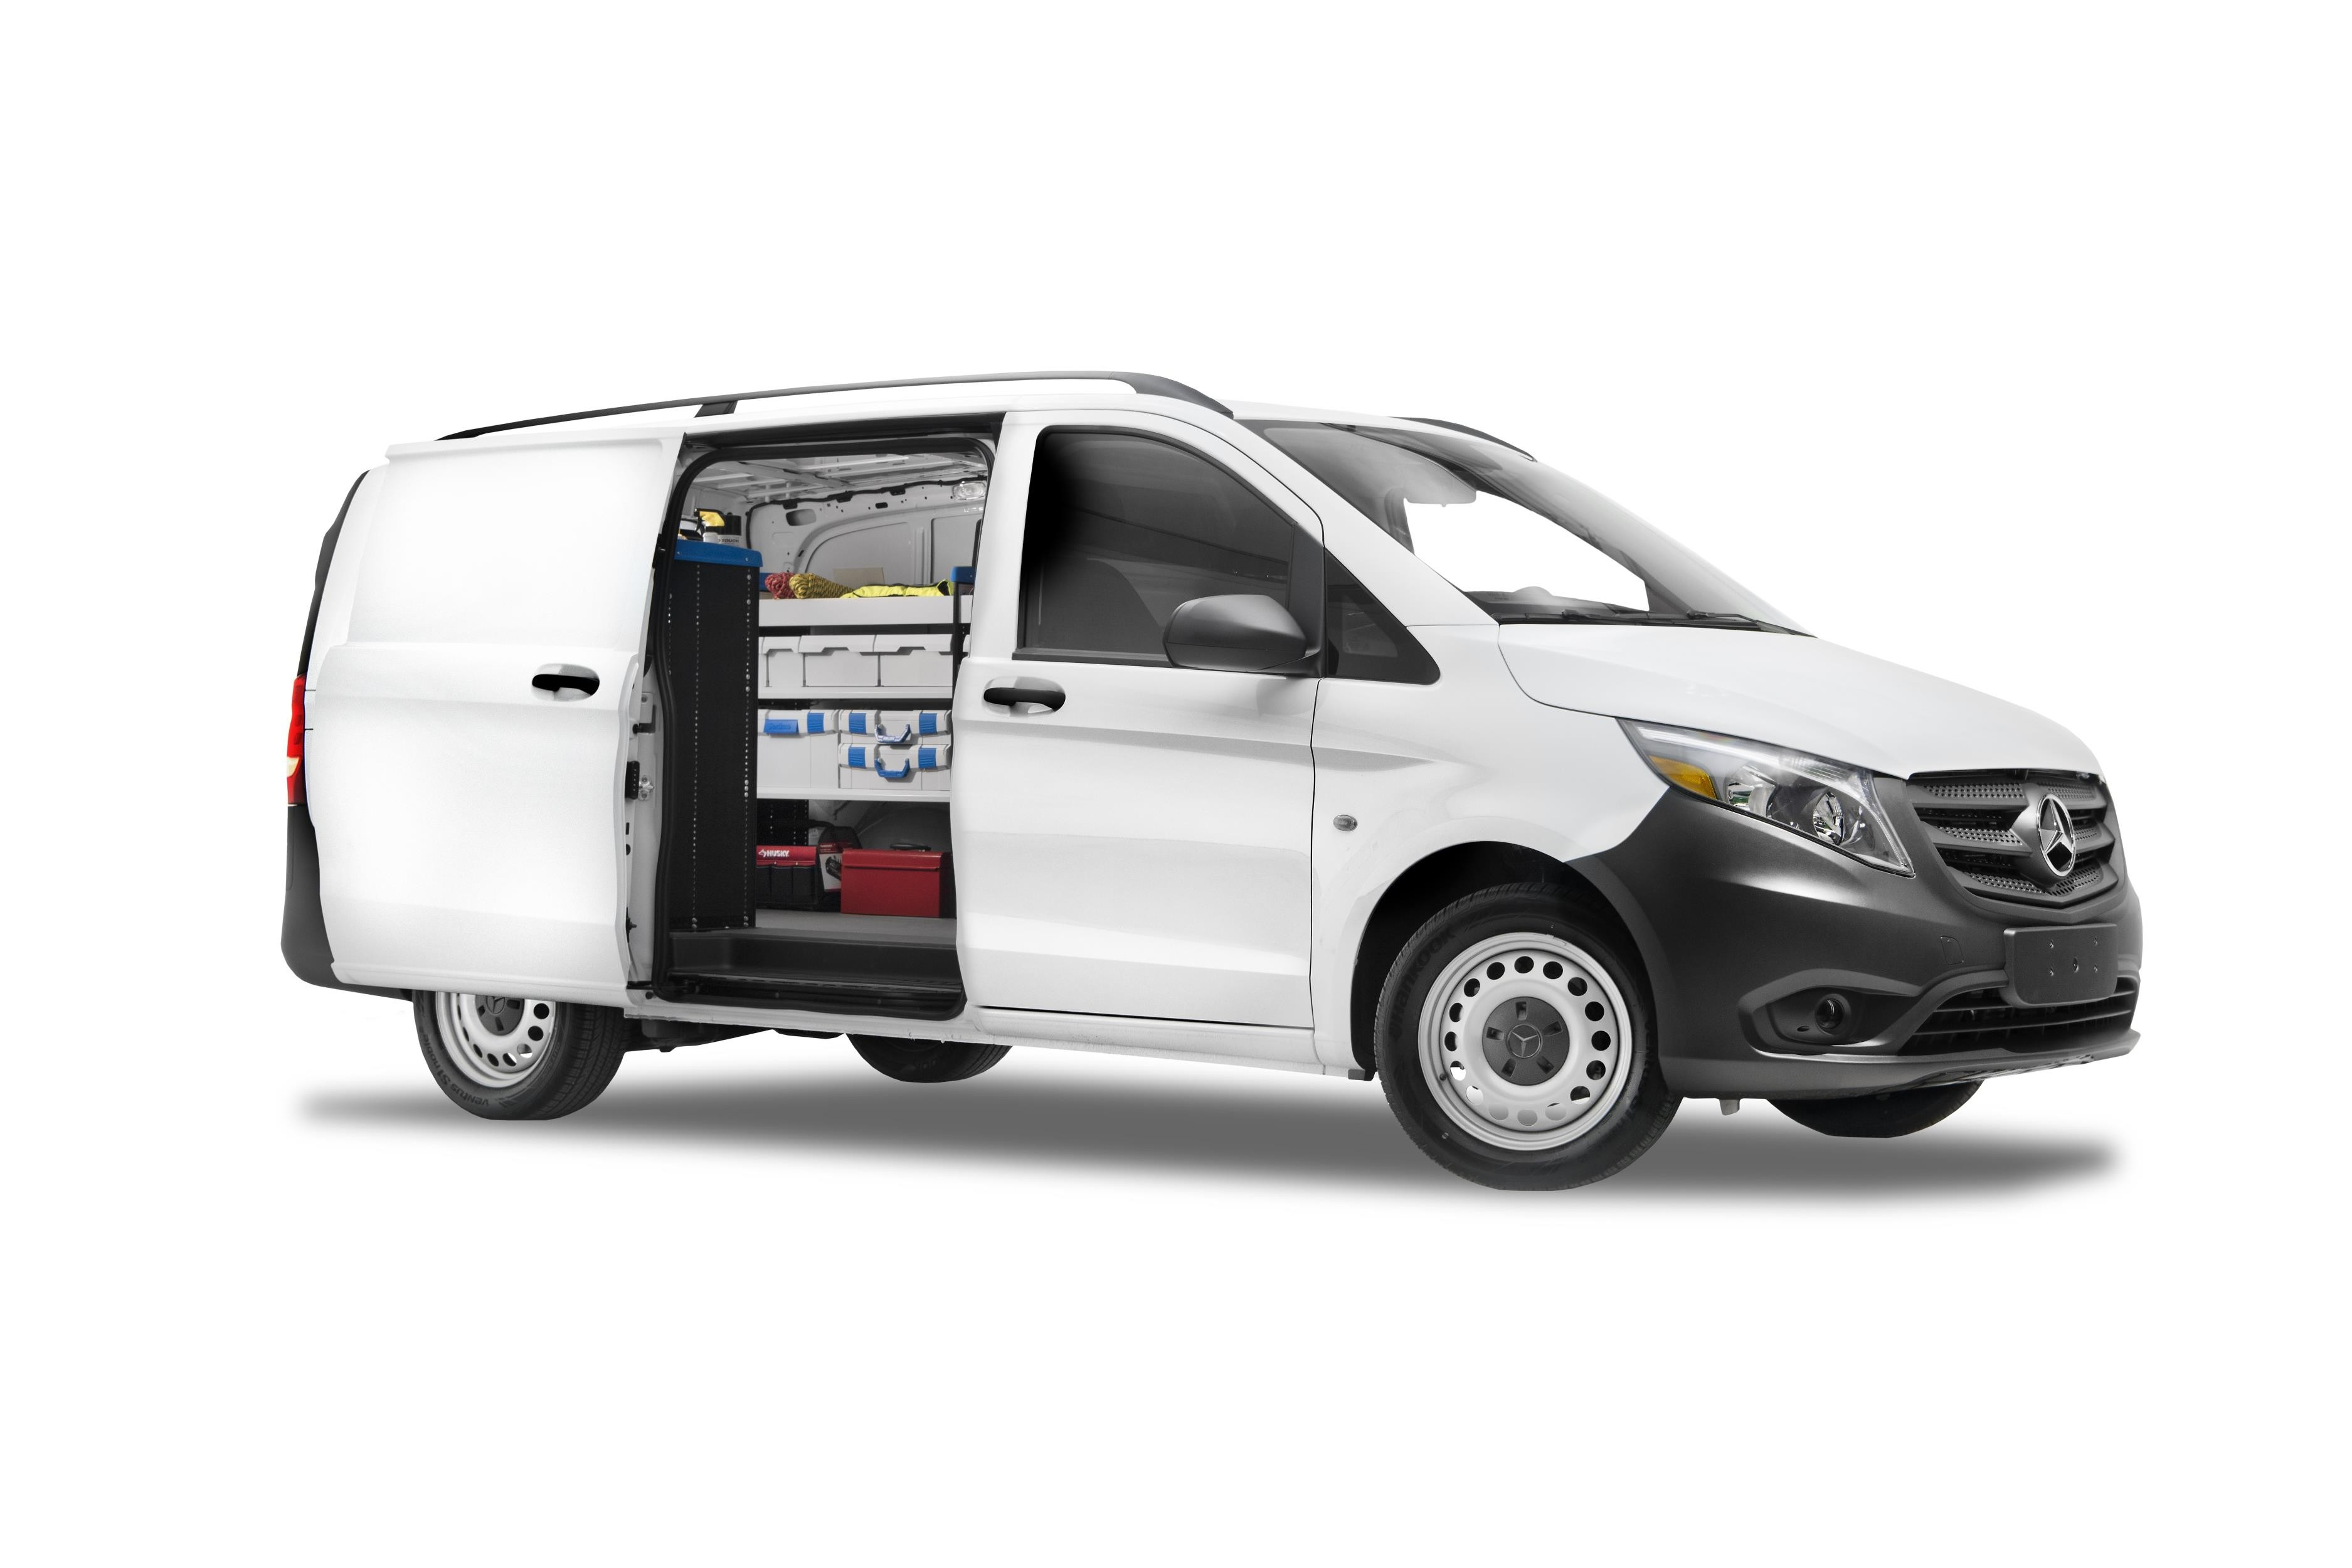 mercedes benz metris worker cargo and metris worker passenger priced in the usa autoevolution. Black Bedroom Furniture Sets. Home Design Ideas